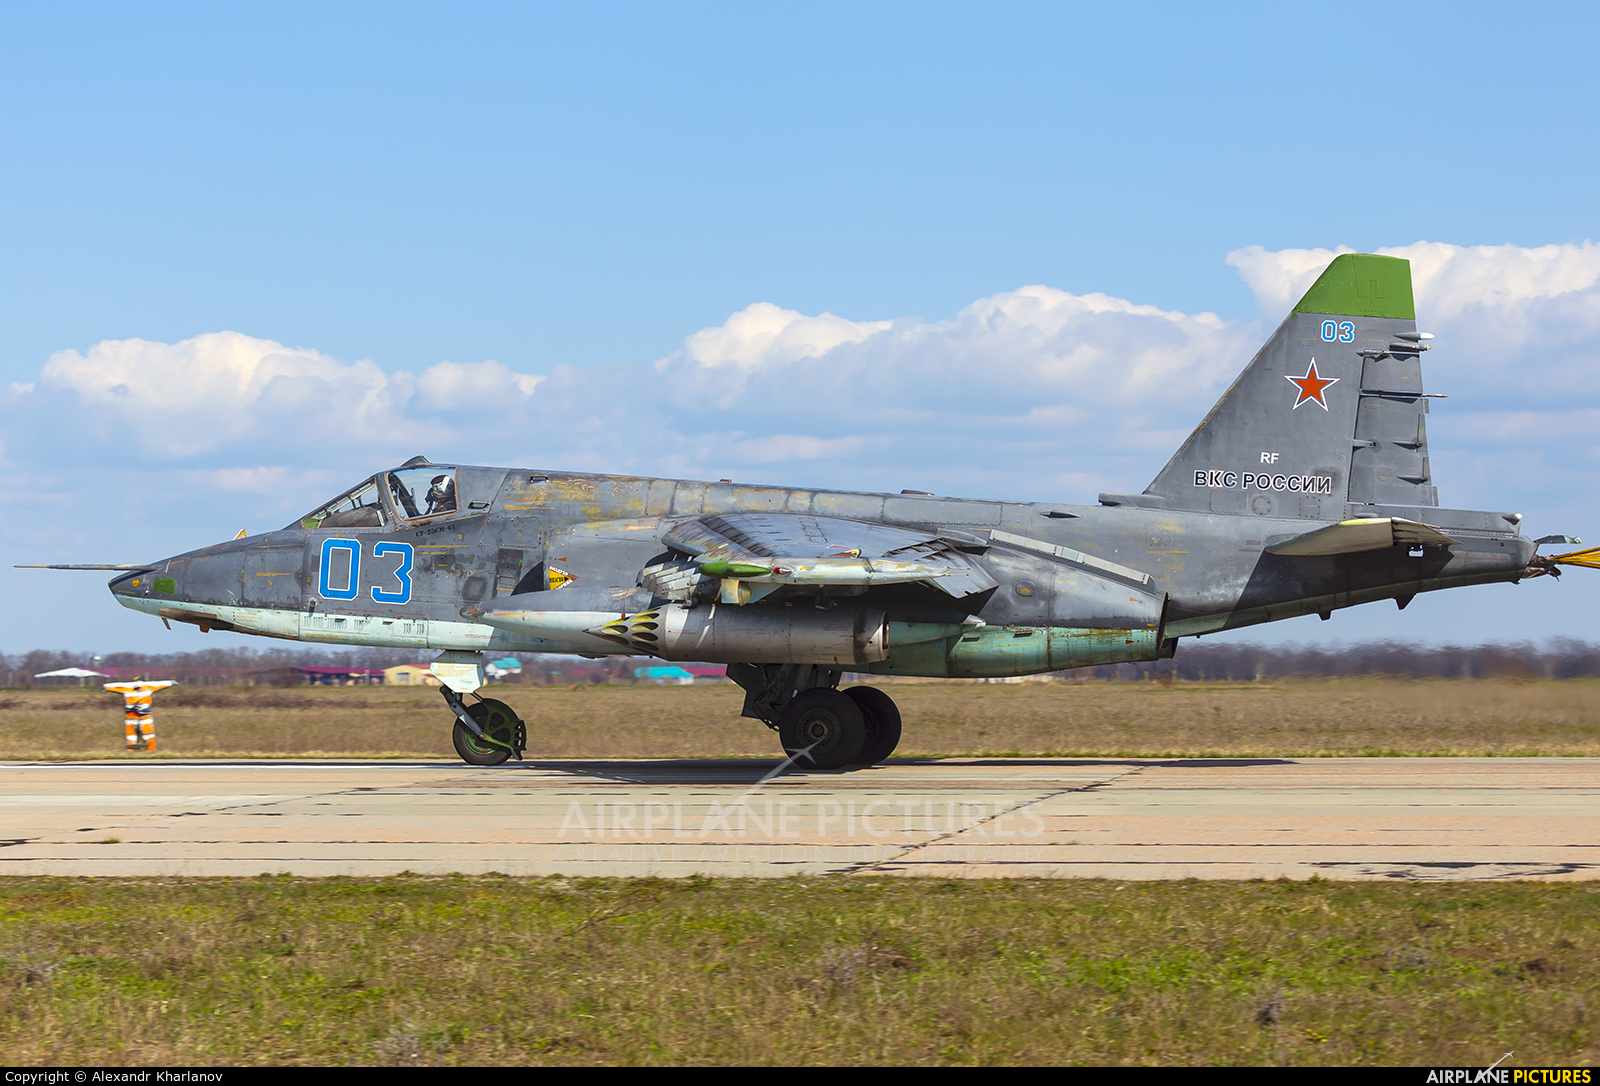 Russia - Air Force 03 aircraft at Undisclosed Location